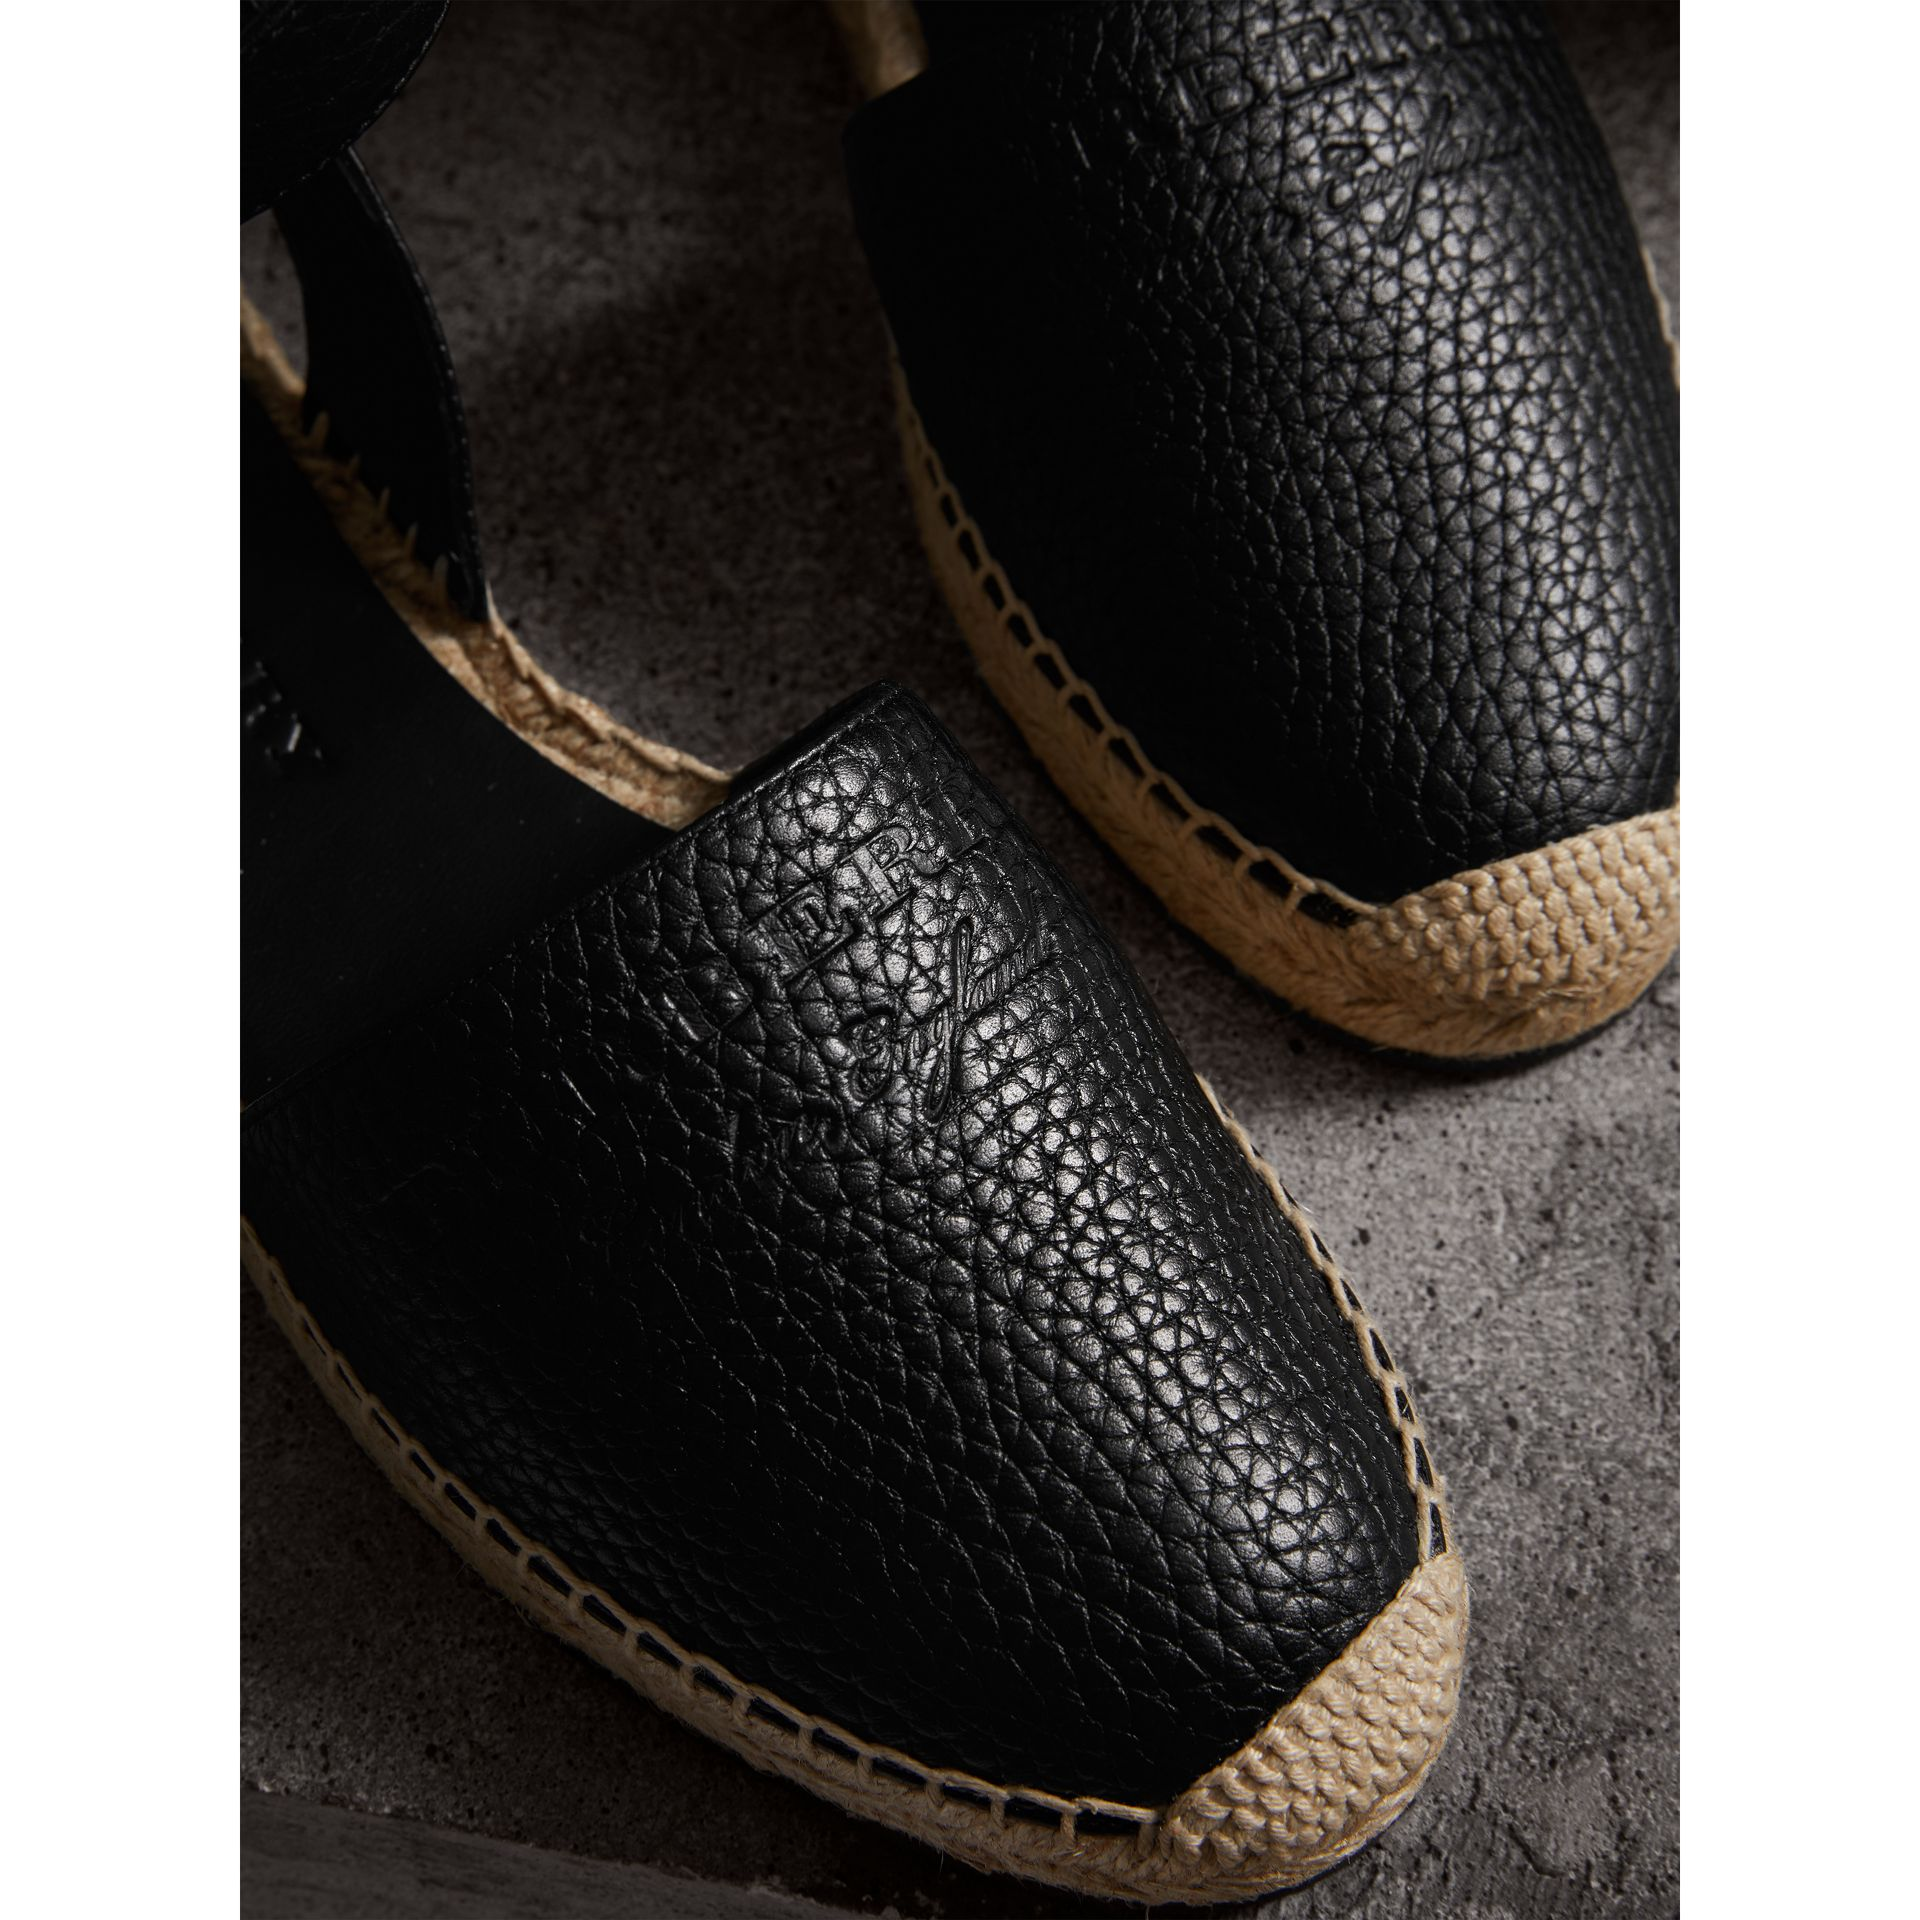 Embossed Grainy Leather Espadrille Sandals in Black - Women | Burberry United States - gallery image 1